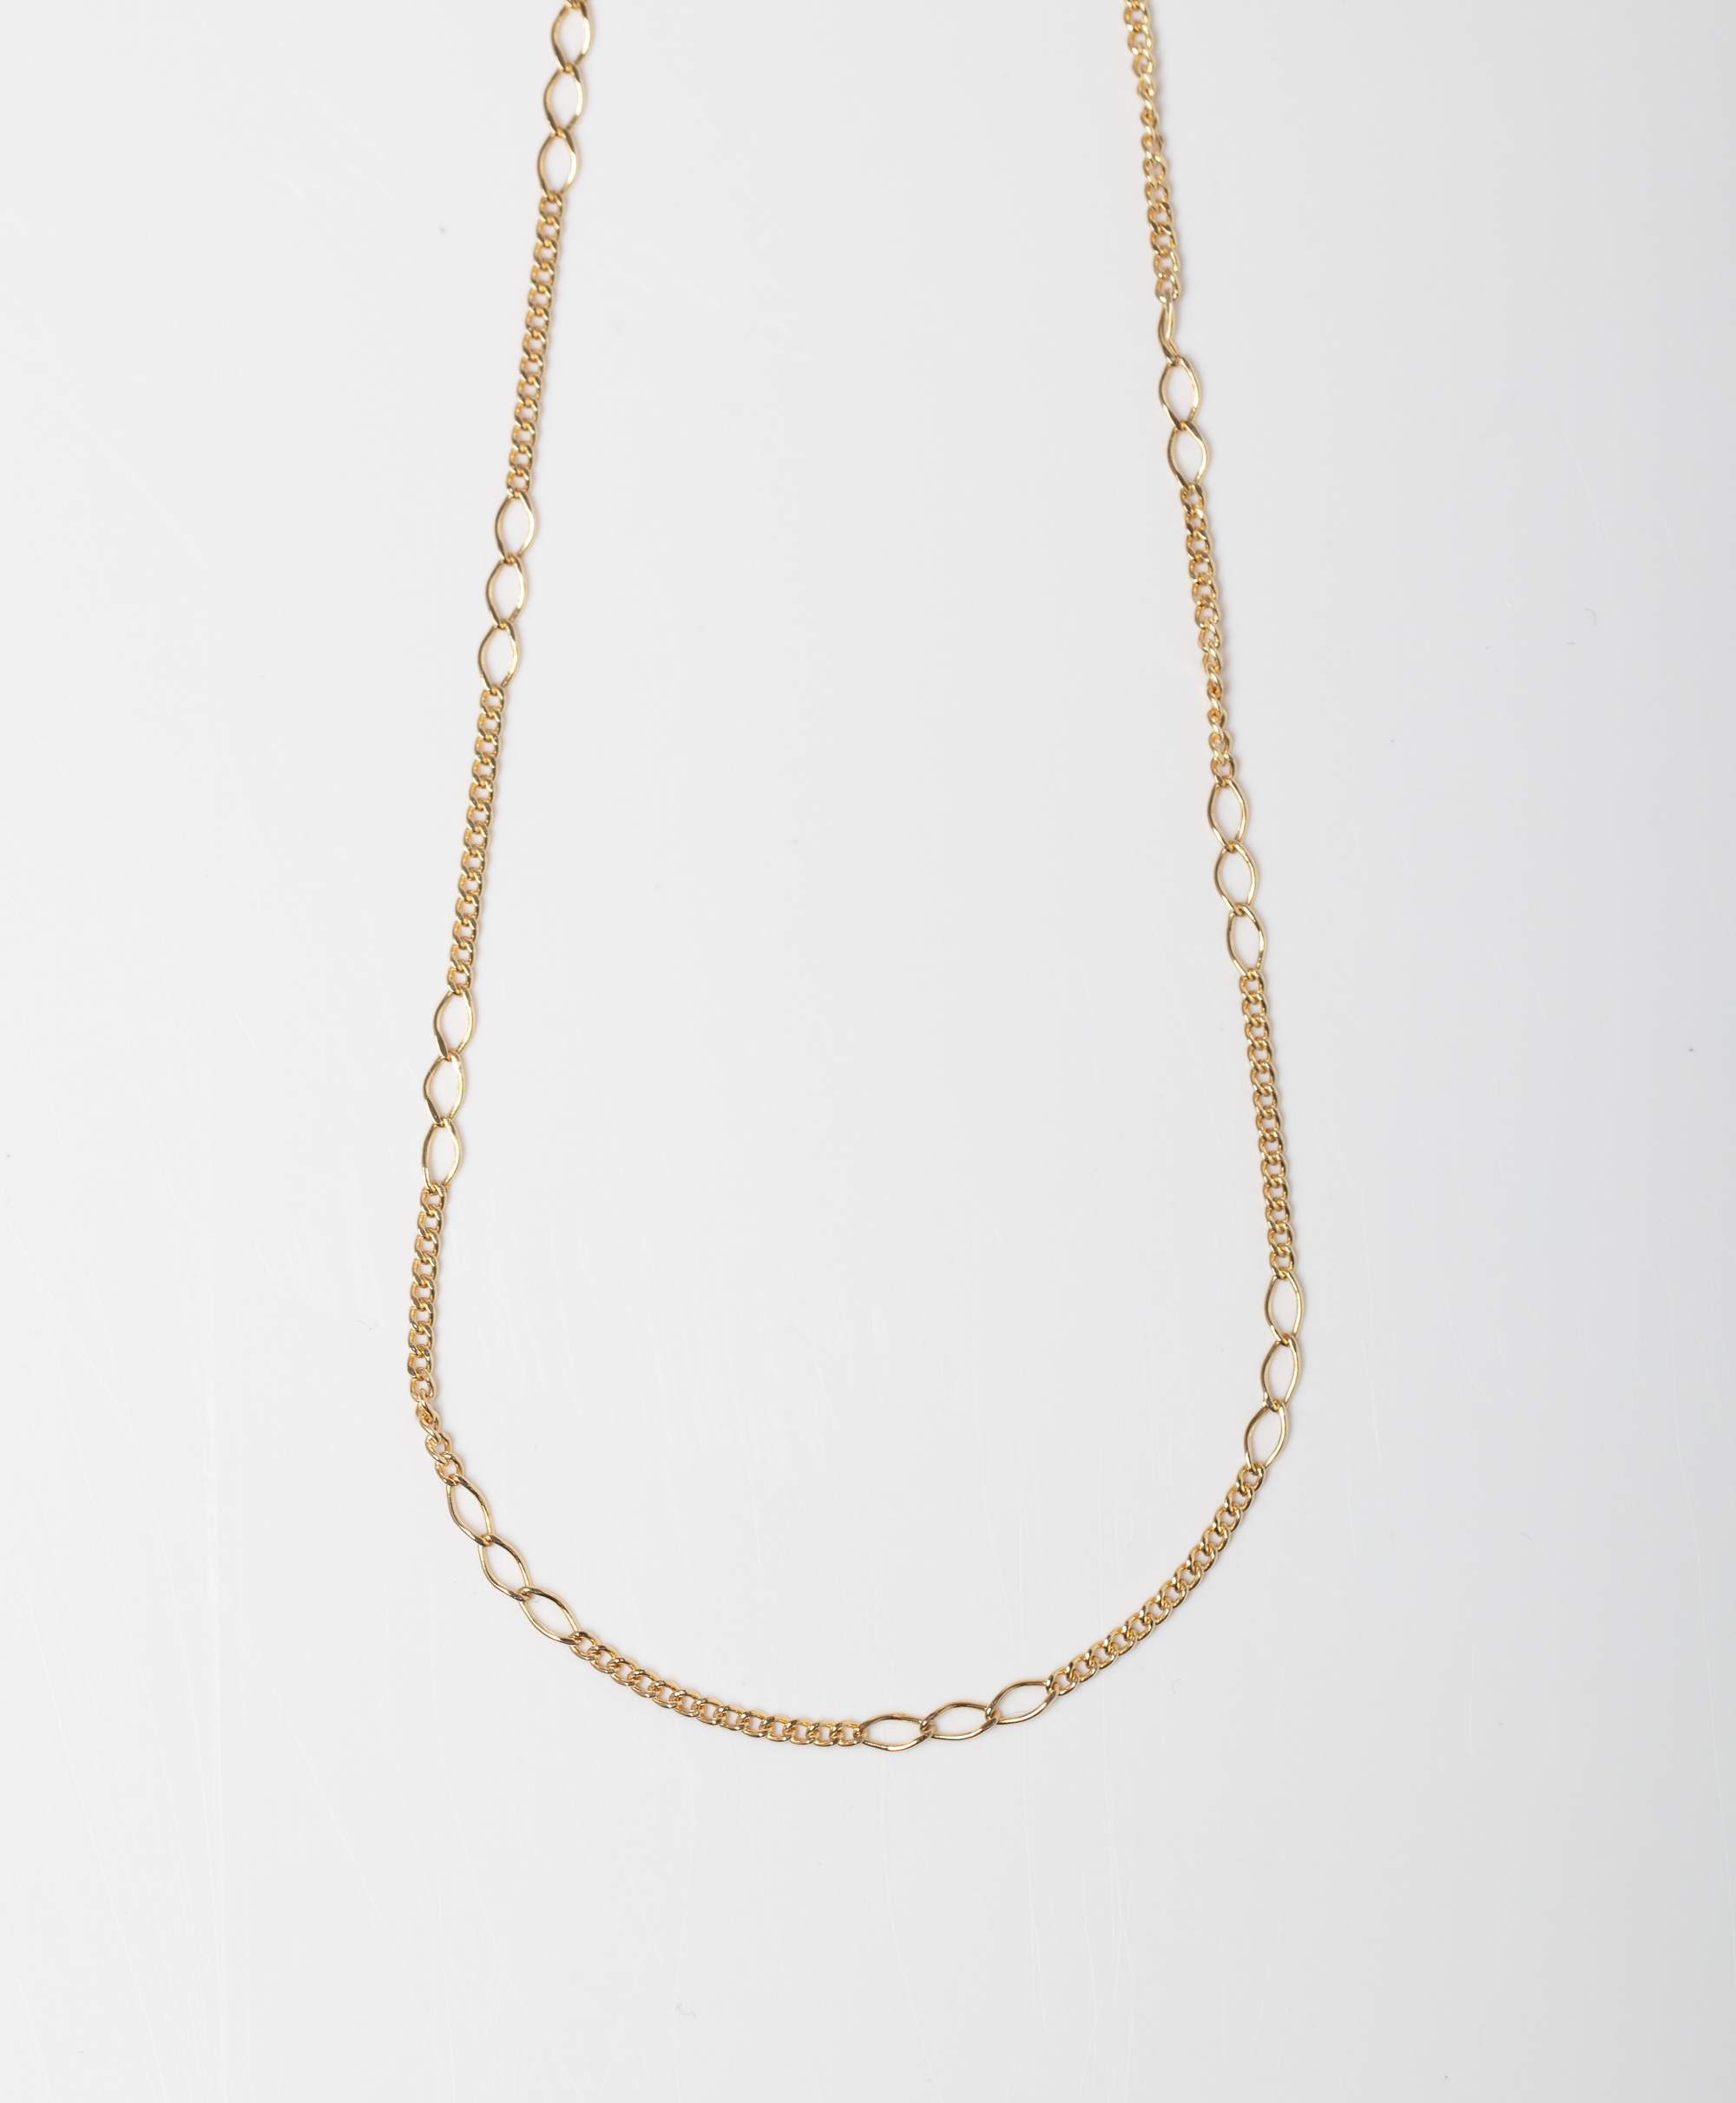 A 9CT GOLD FANCY FIGARO CHAIN